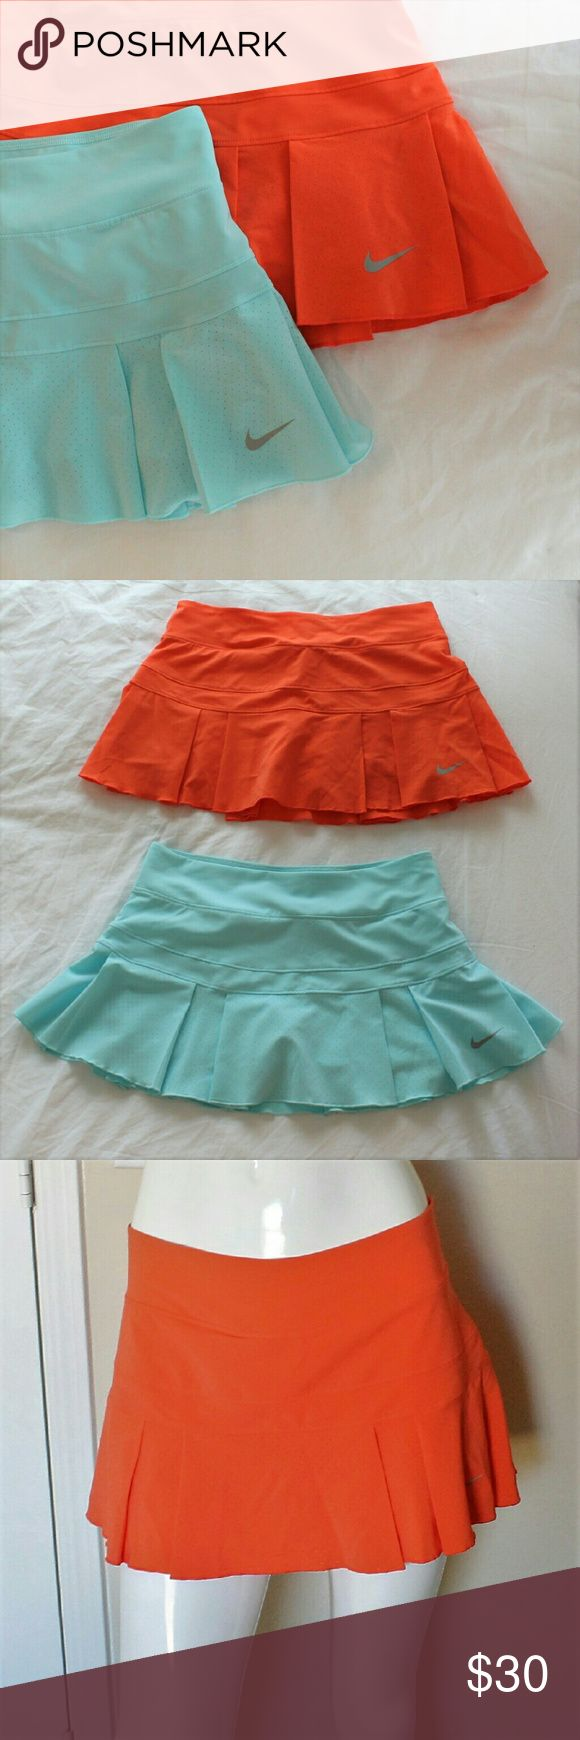 Nike Drifit Skort Bundle Two coral and light blue Nike Drifit skorts in like new condition. Each pair has an elastic waist and hidden short underneath. They are both the exact same size and style. These would be a perfect addition to any workout wardrobe.   Please let me know if you have questions or need more pictures. I will consider all reasonable offers, but no trades, please. Nike Skirts Mini